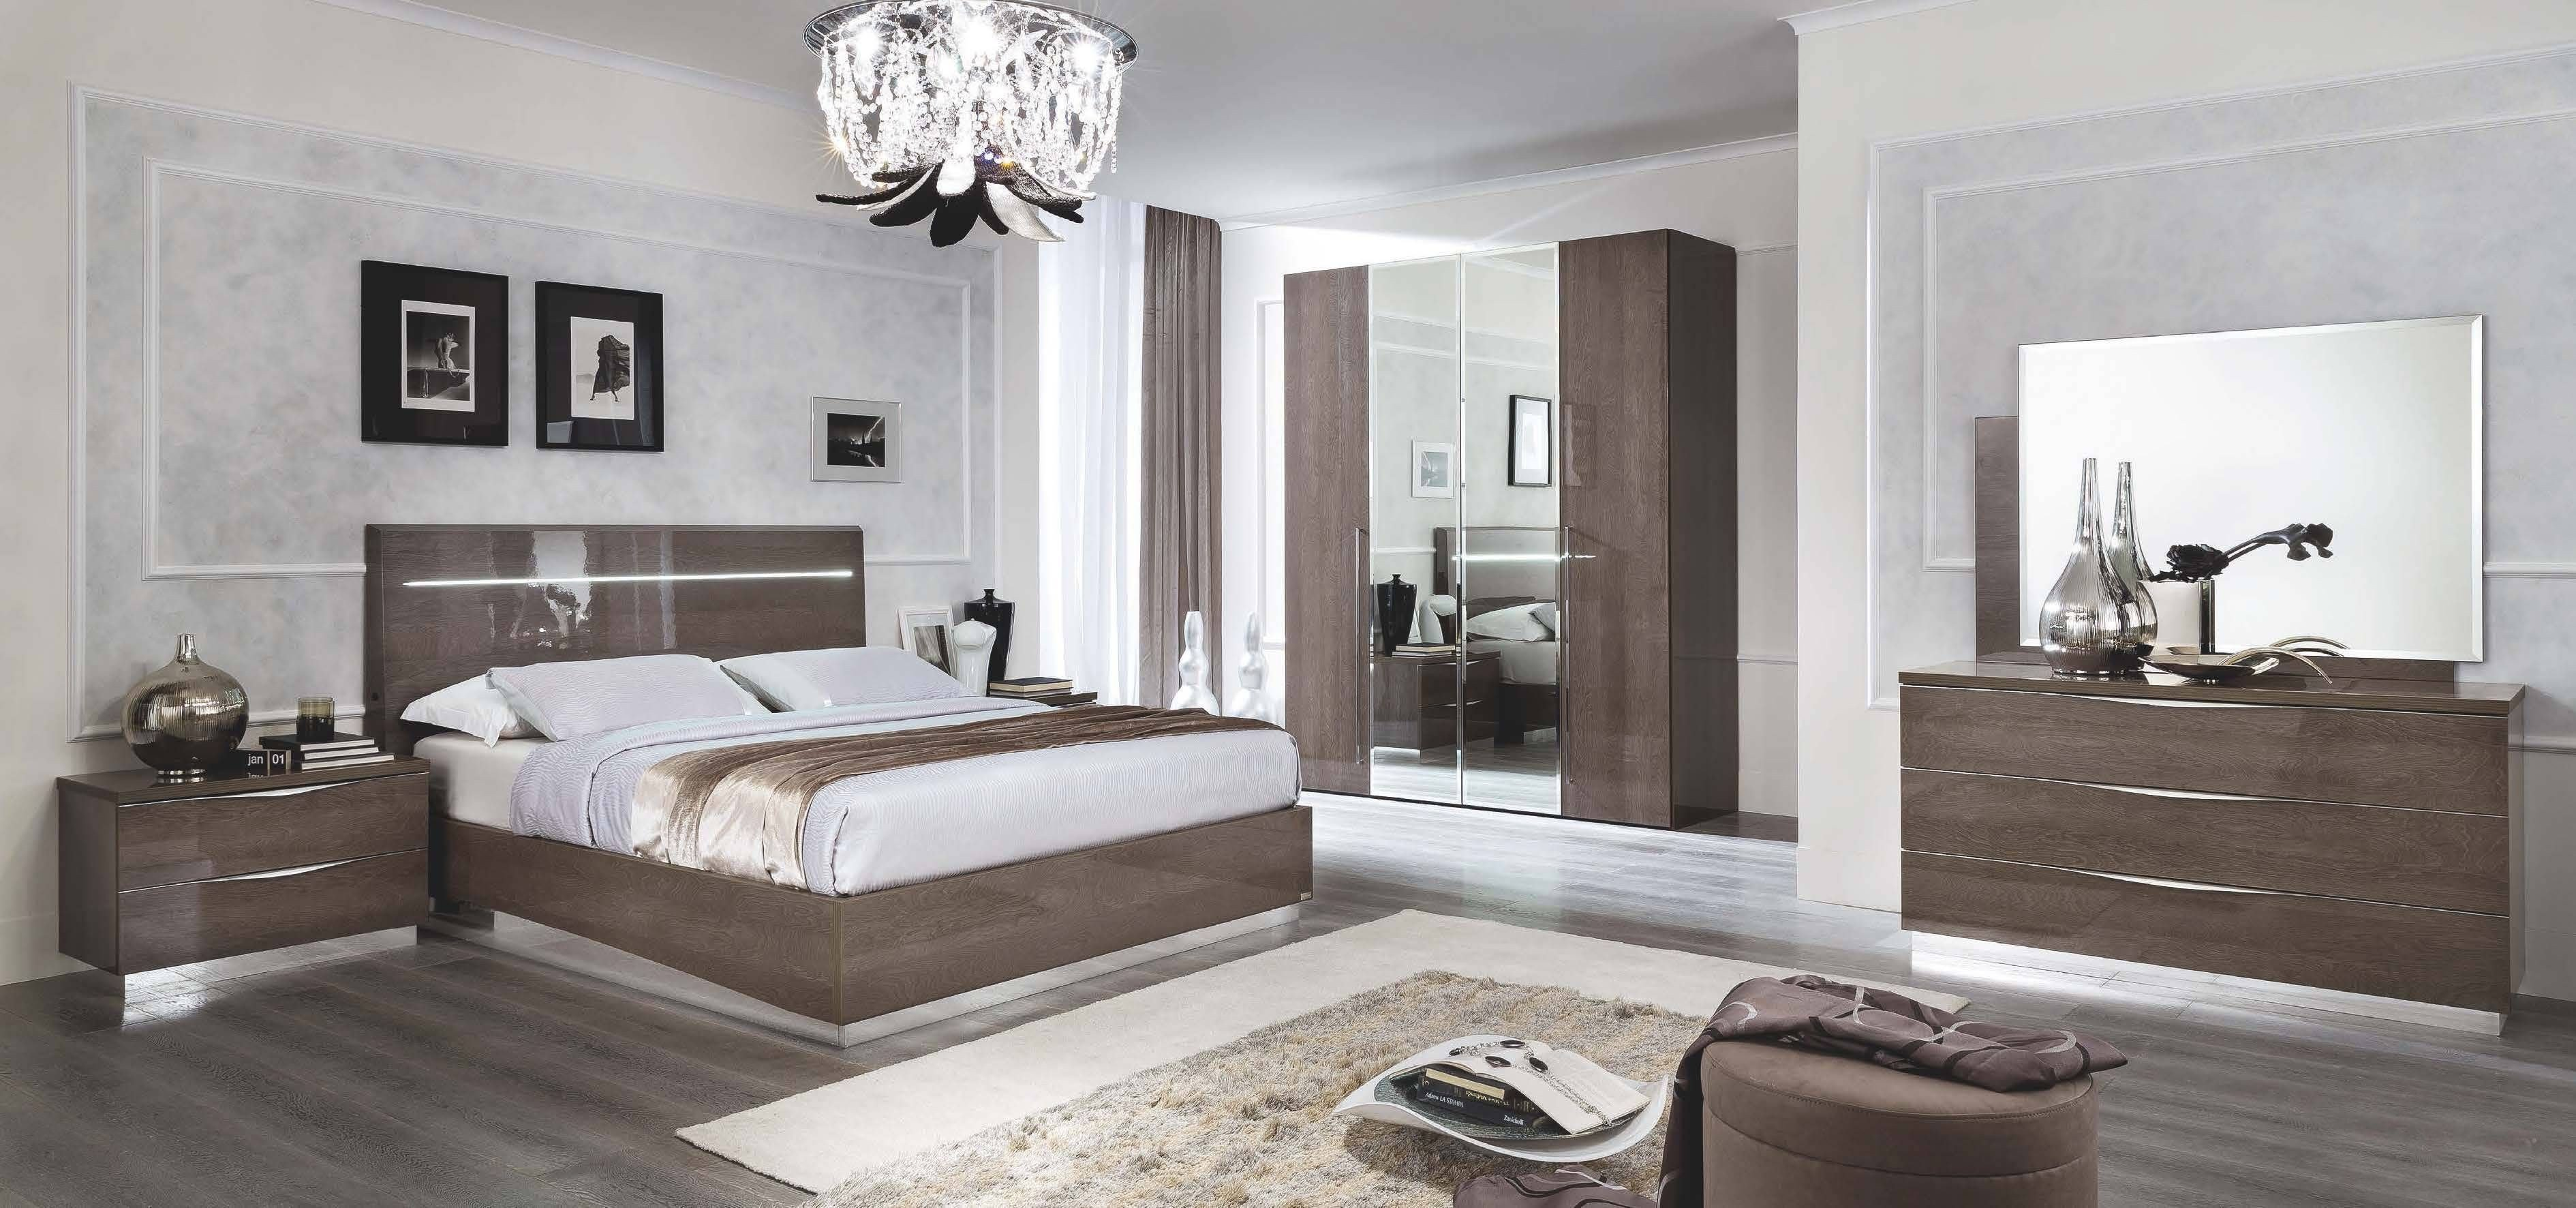 Italian Modern Bedroom Furniture Elegant Made In Italy Quality High End Bedroom Sets